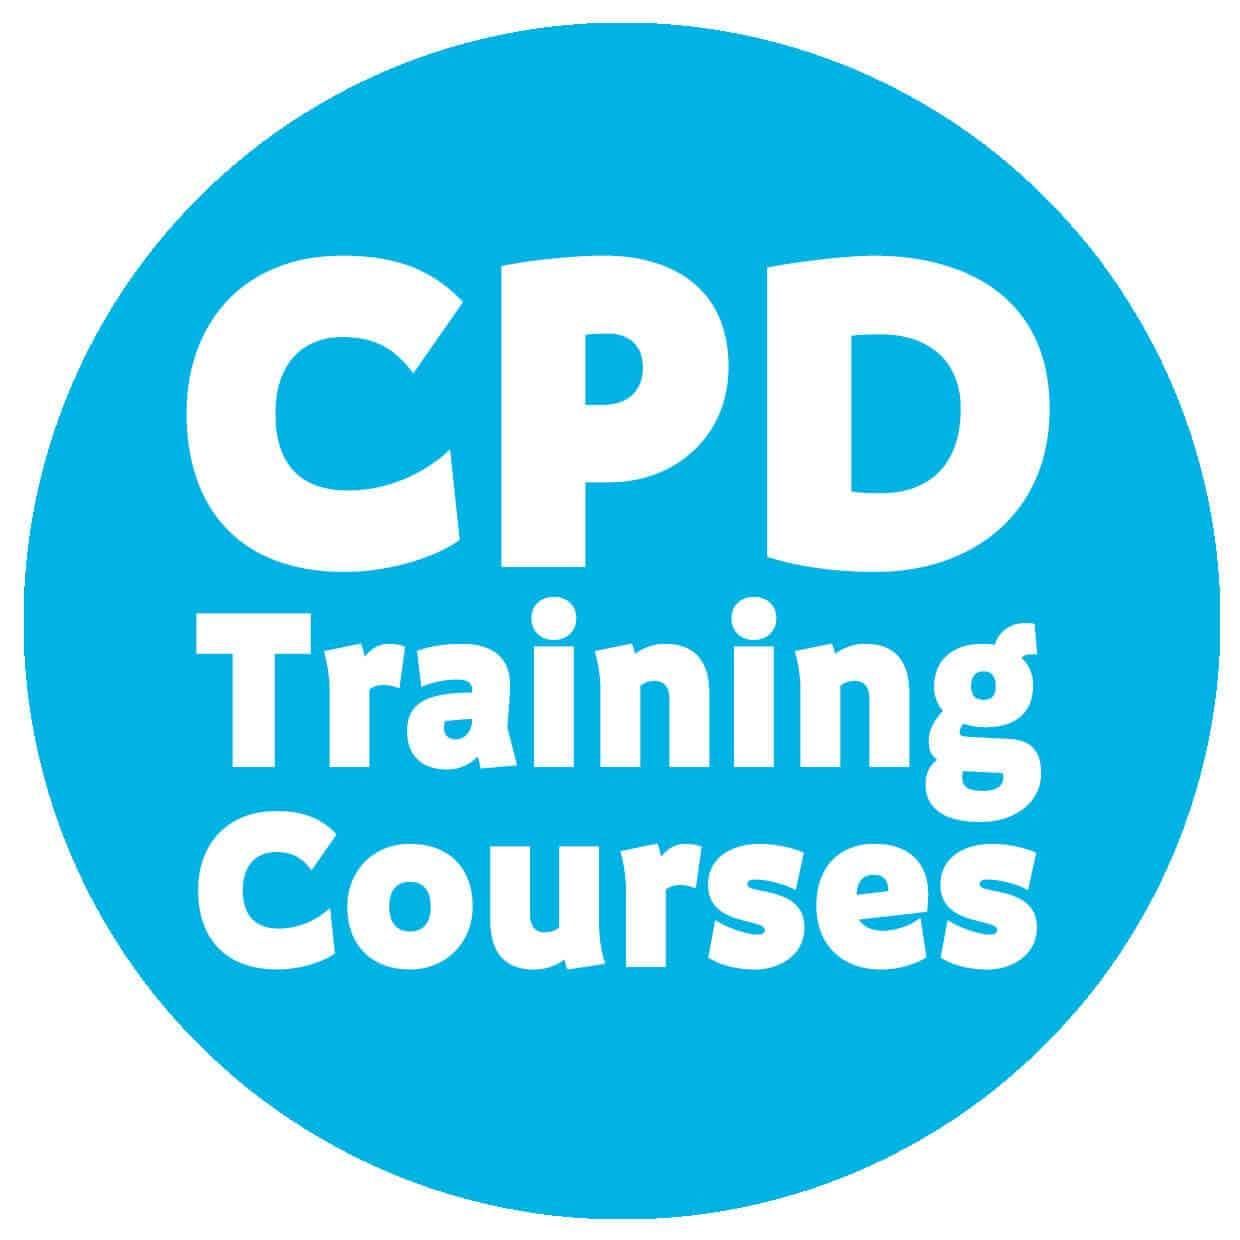 CPD-courses.jpg